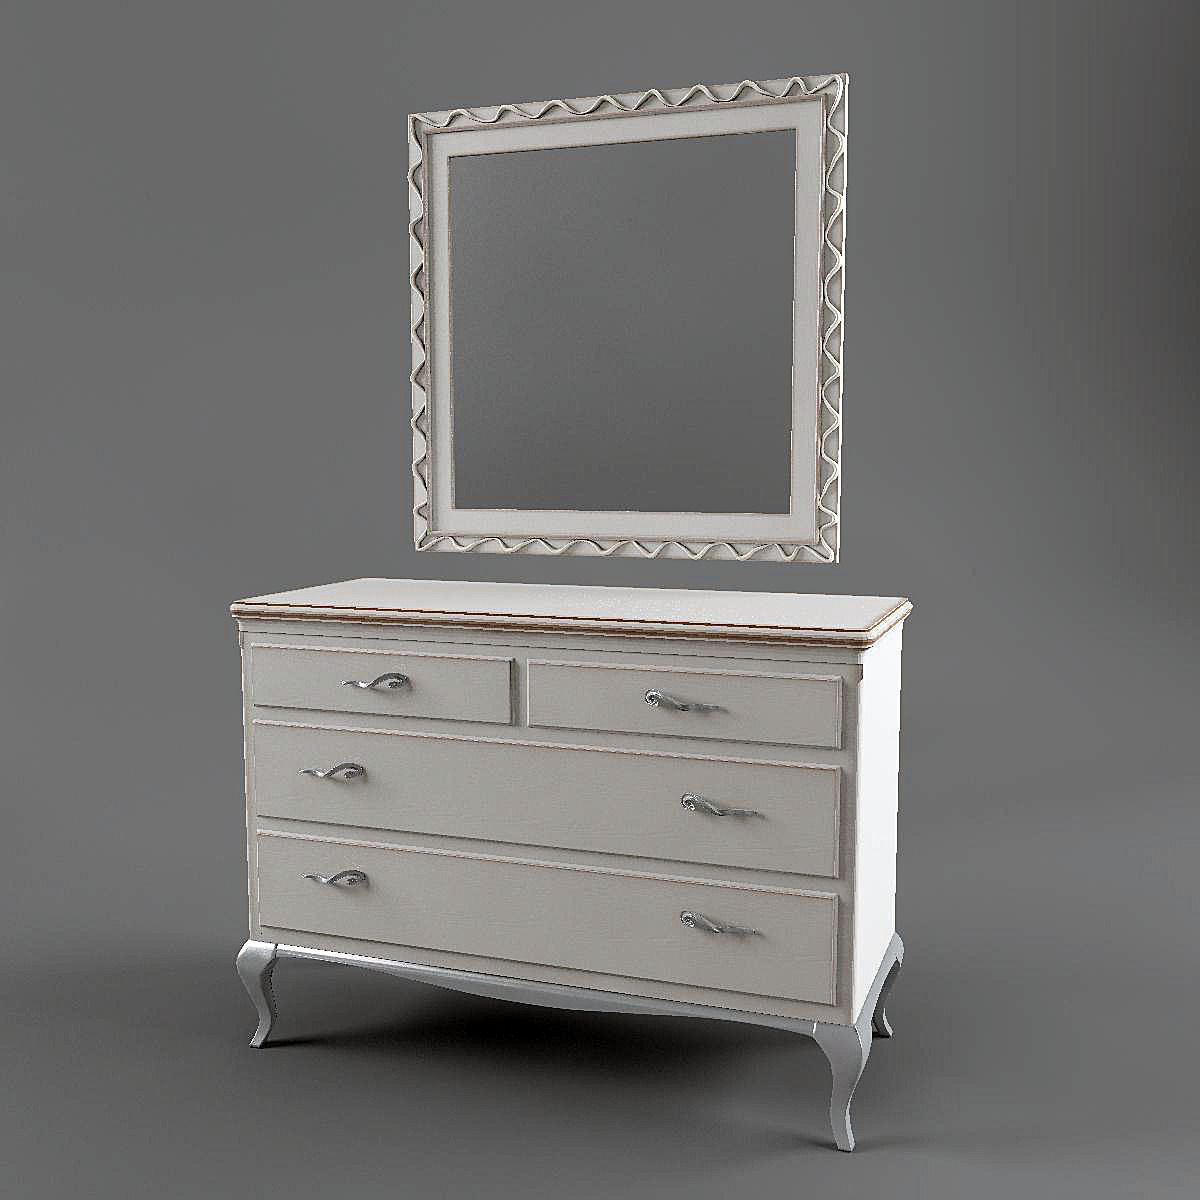 The chest of drawers Frari